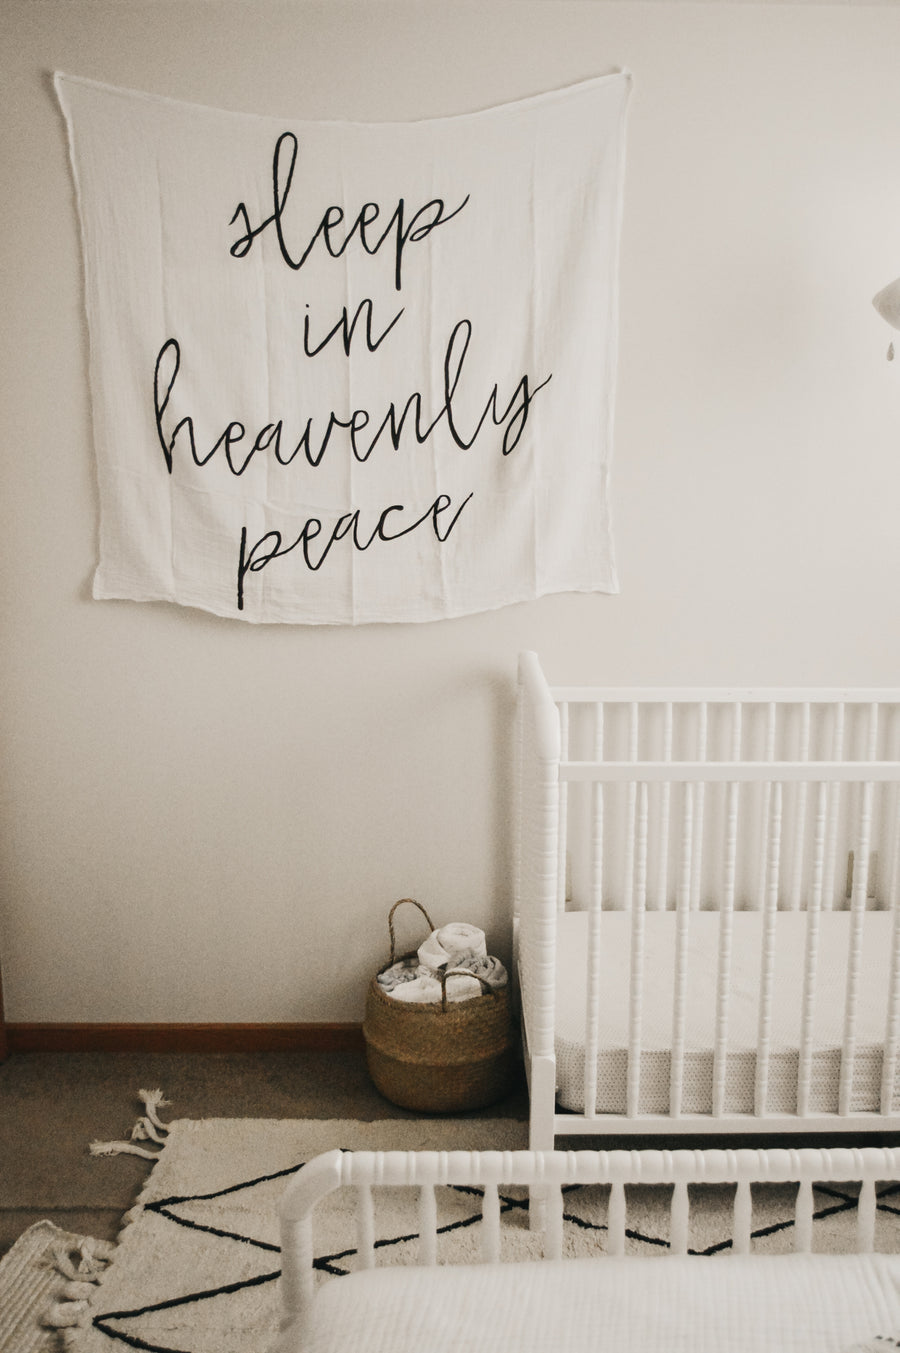 Organic Cotton Muslin Swaddle Blanket + Wall Art -  Sleep in heavenly peace